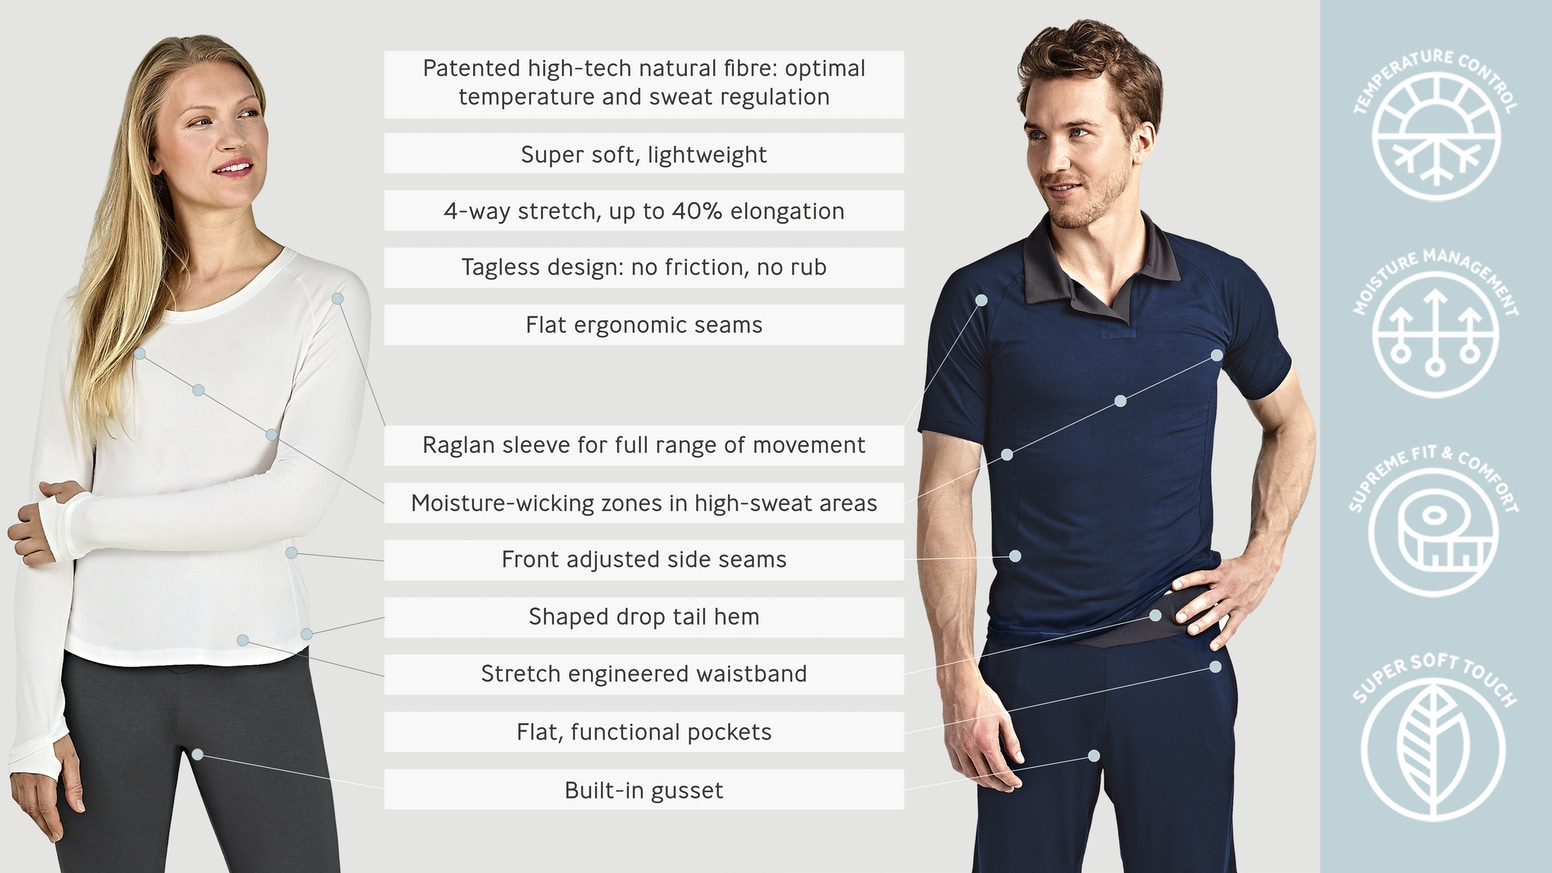 Our high tech natural fabric is scientifically proven to boost sleep comfort on 4 levels for a better sleep quality.